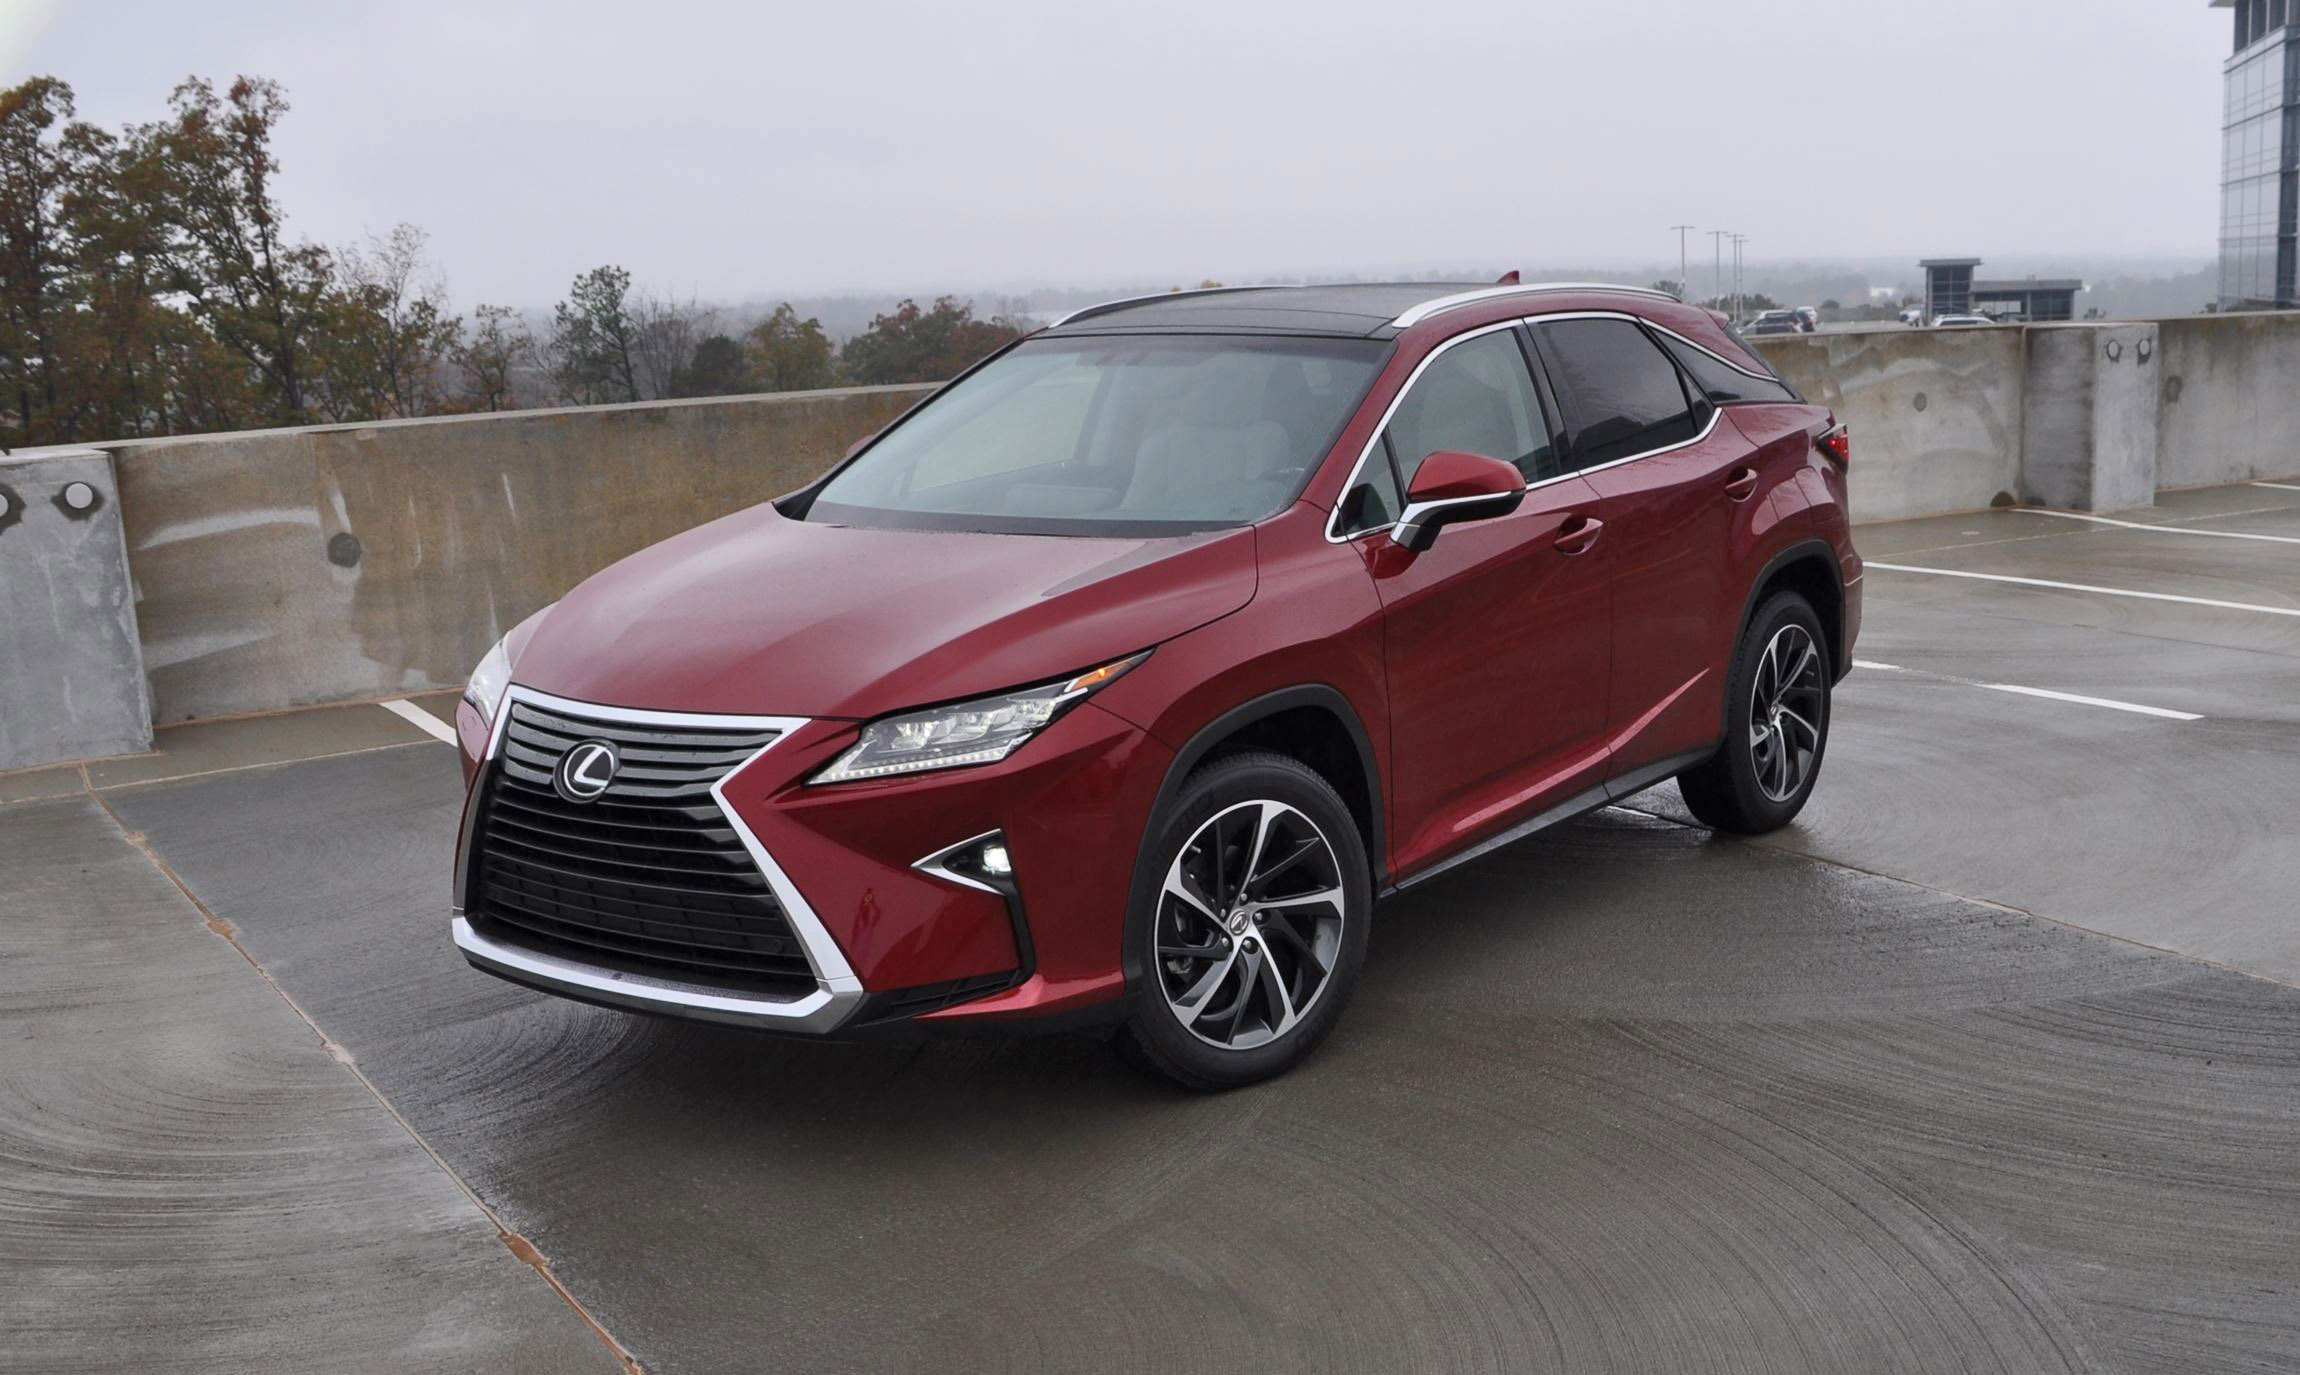 2016 Lexus RX350 Review